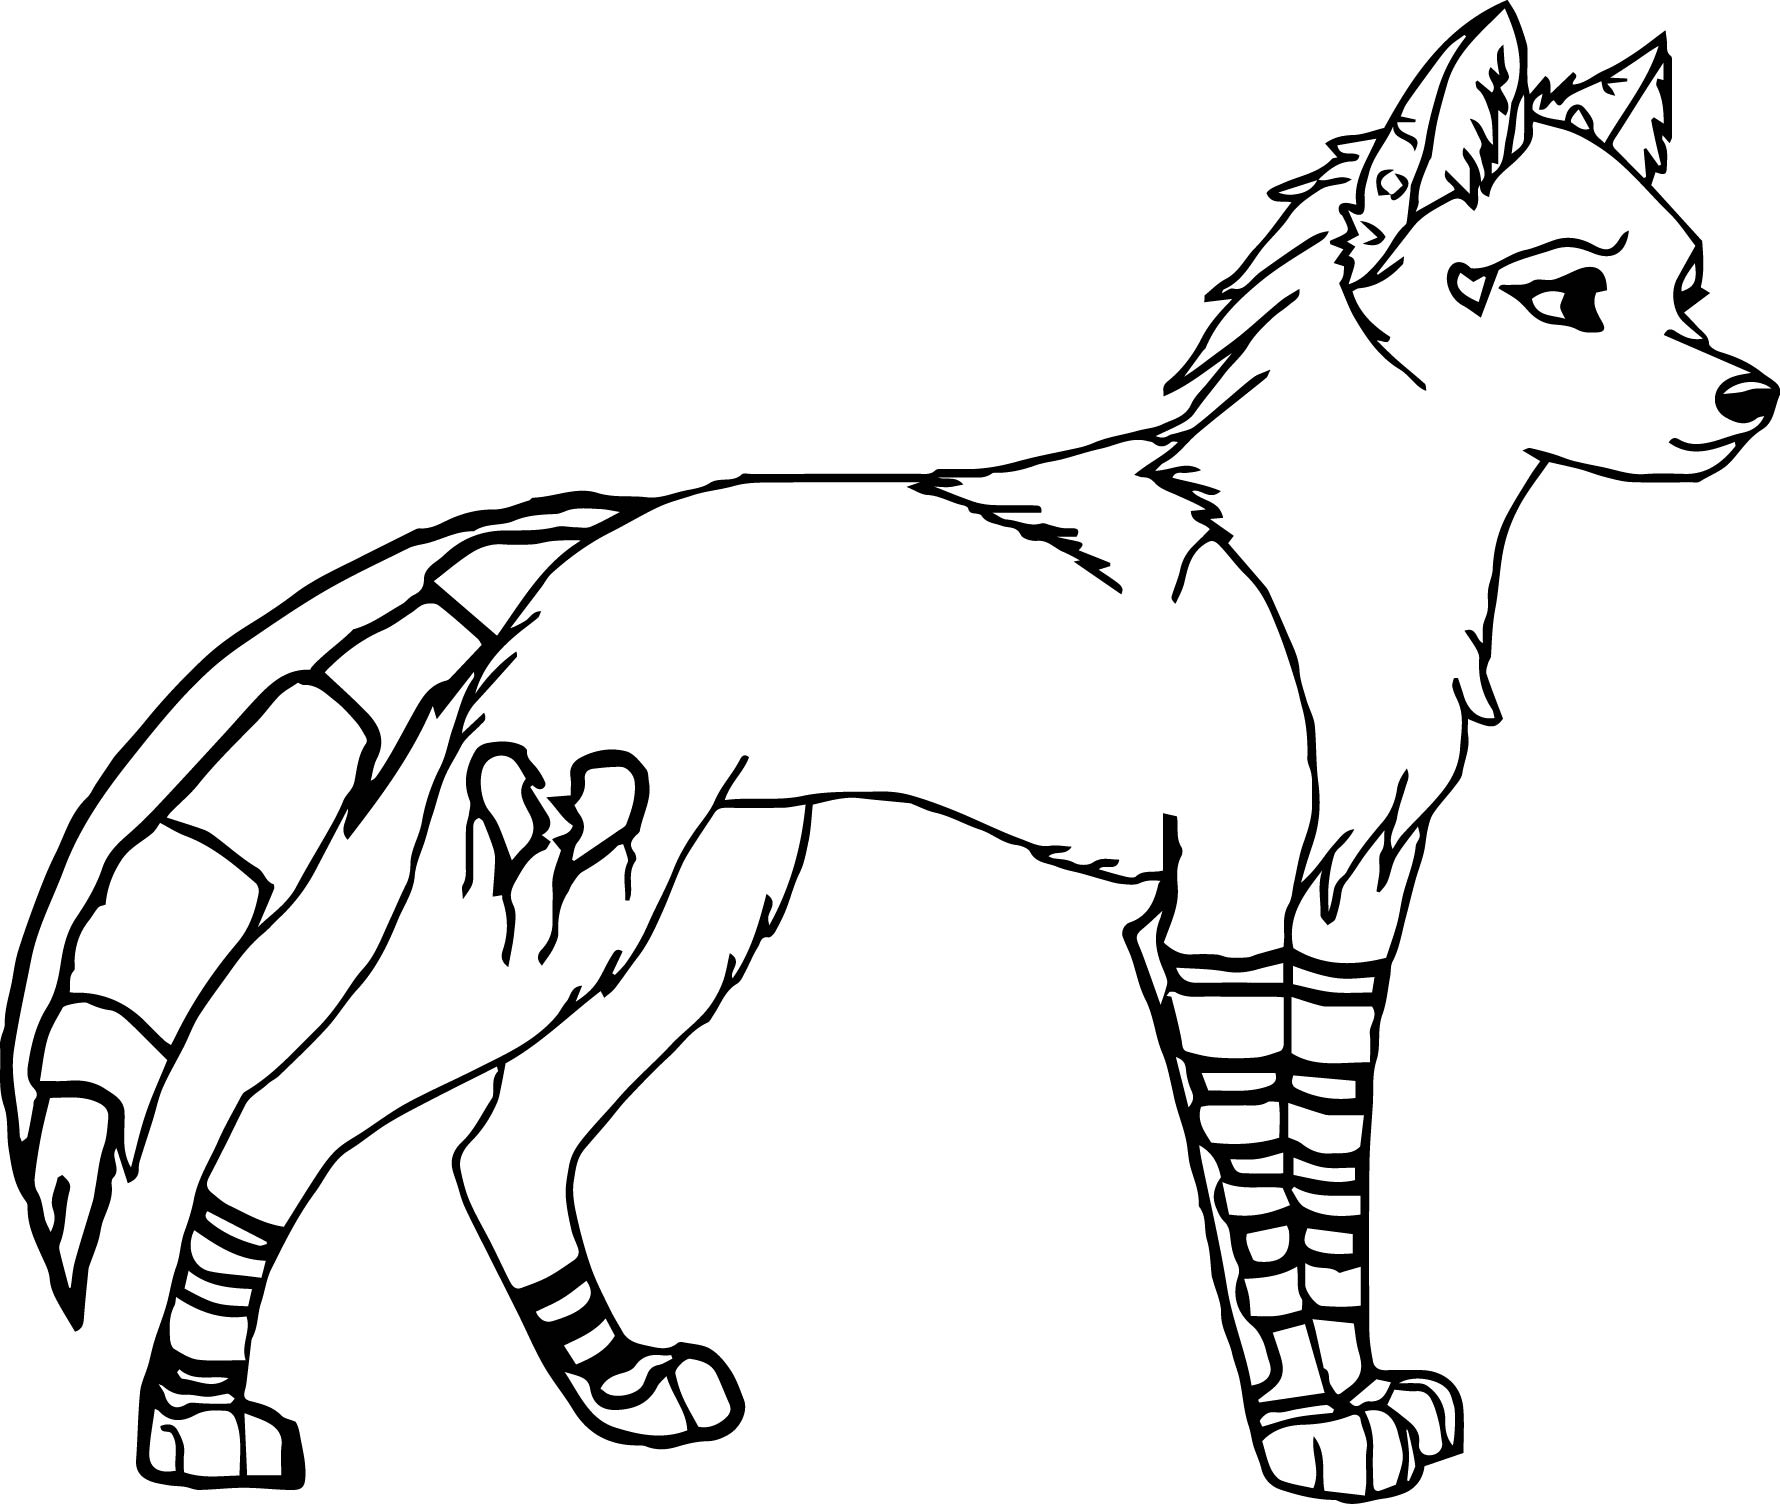 Wolf Coloring Pages Fascinating Female Wolf Coloring Pages  Wecoloringpage Inspiration Design